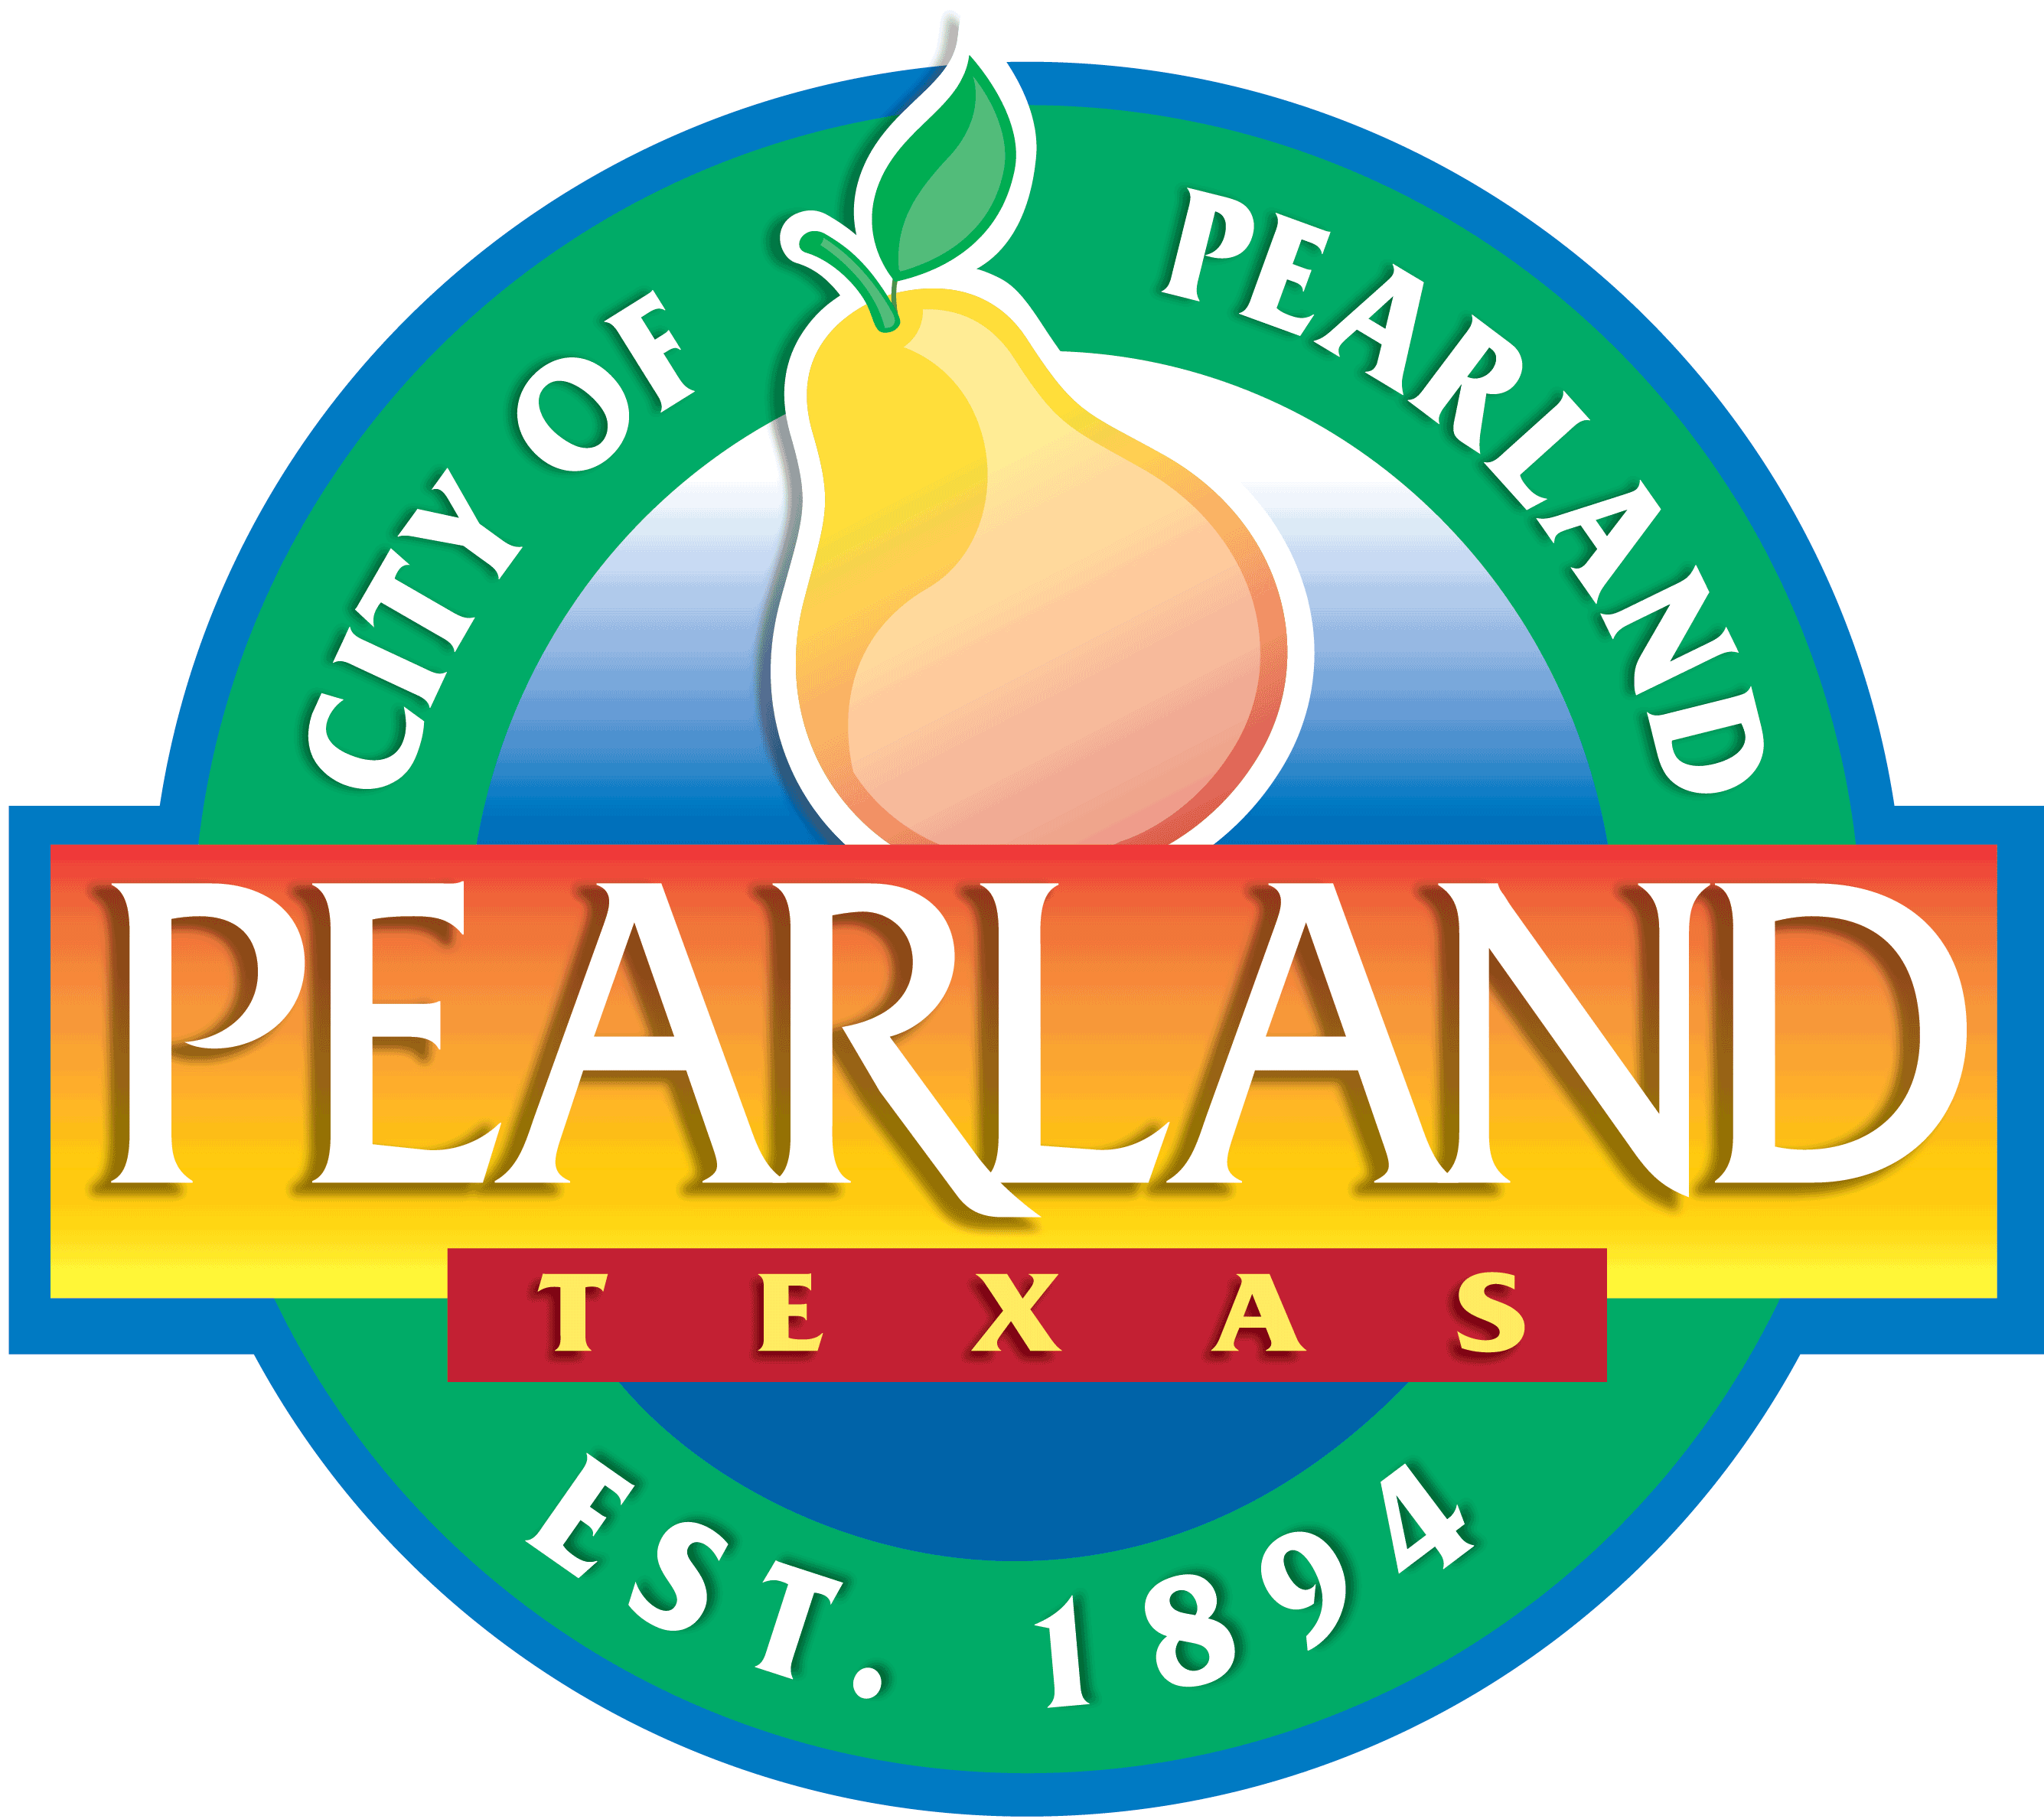 City of Pearland Logo